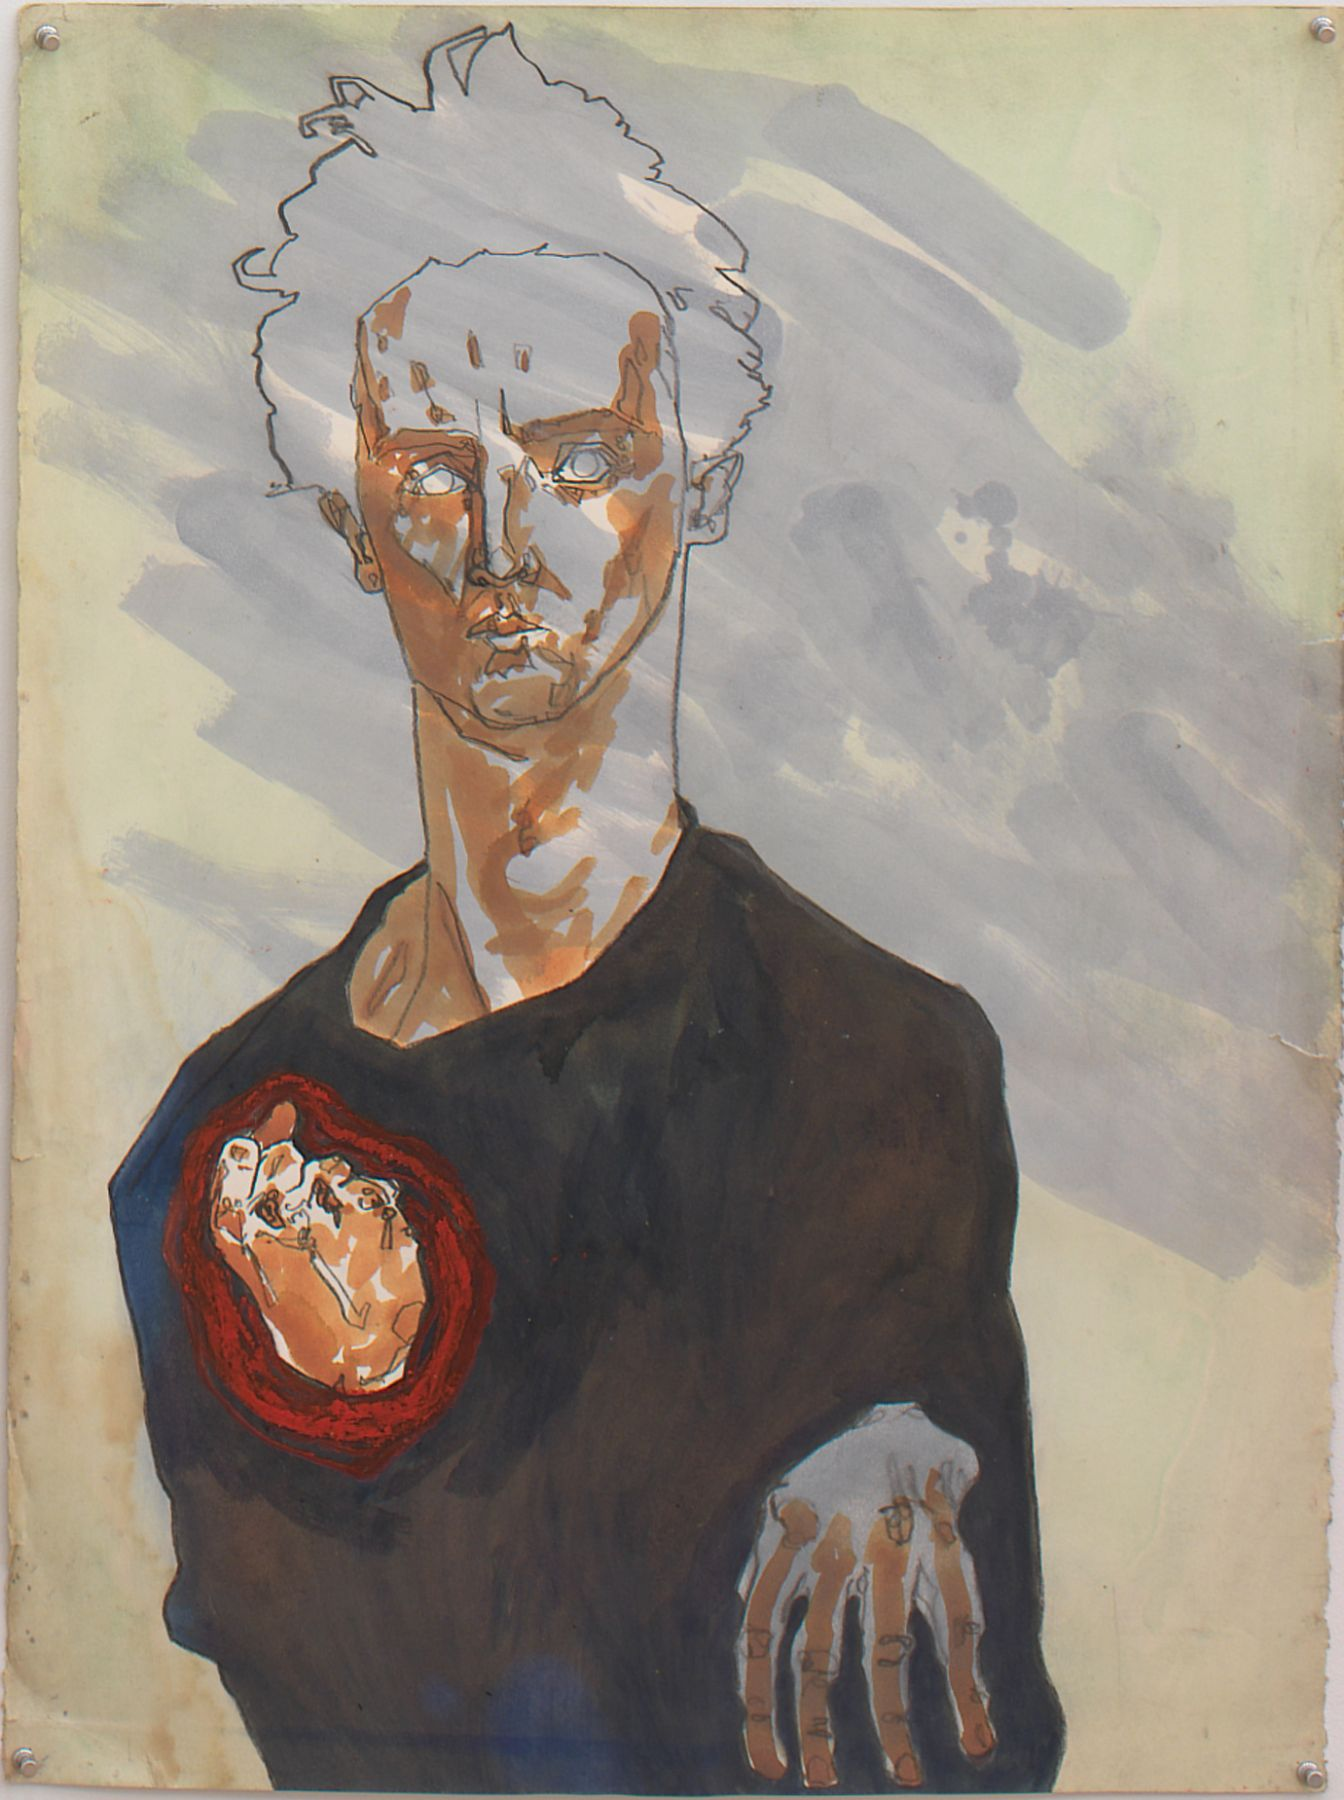 Self Portrait with Red Fist, 1982, Ink, graphite and oil pastel on paper